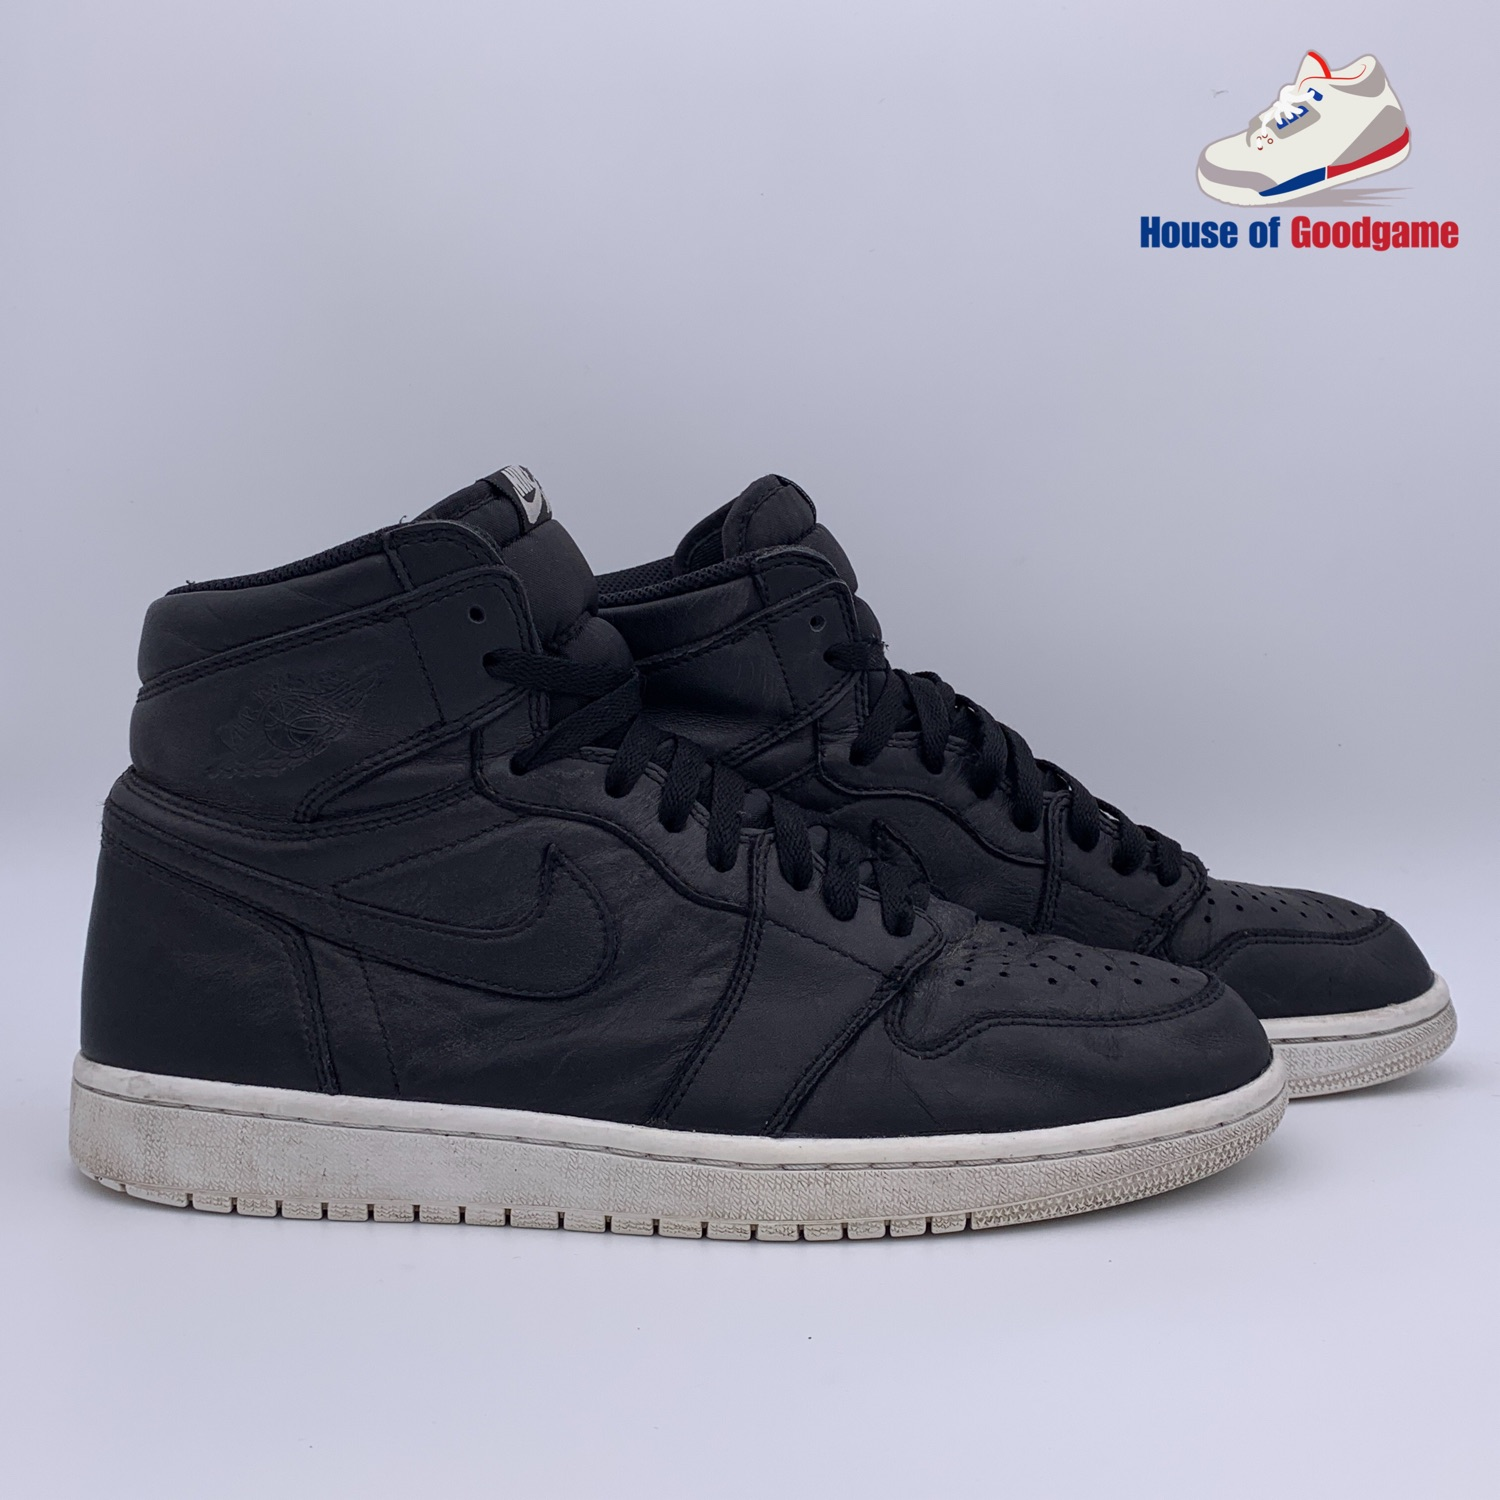 low priced 5d578 8f0a5 Nike Air Jordan 1 High Cyber Monday